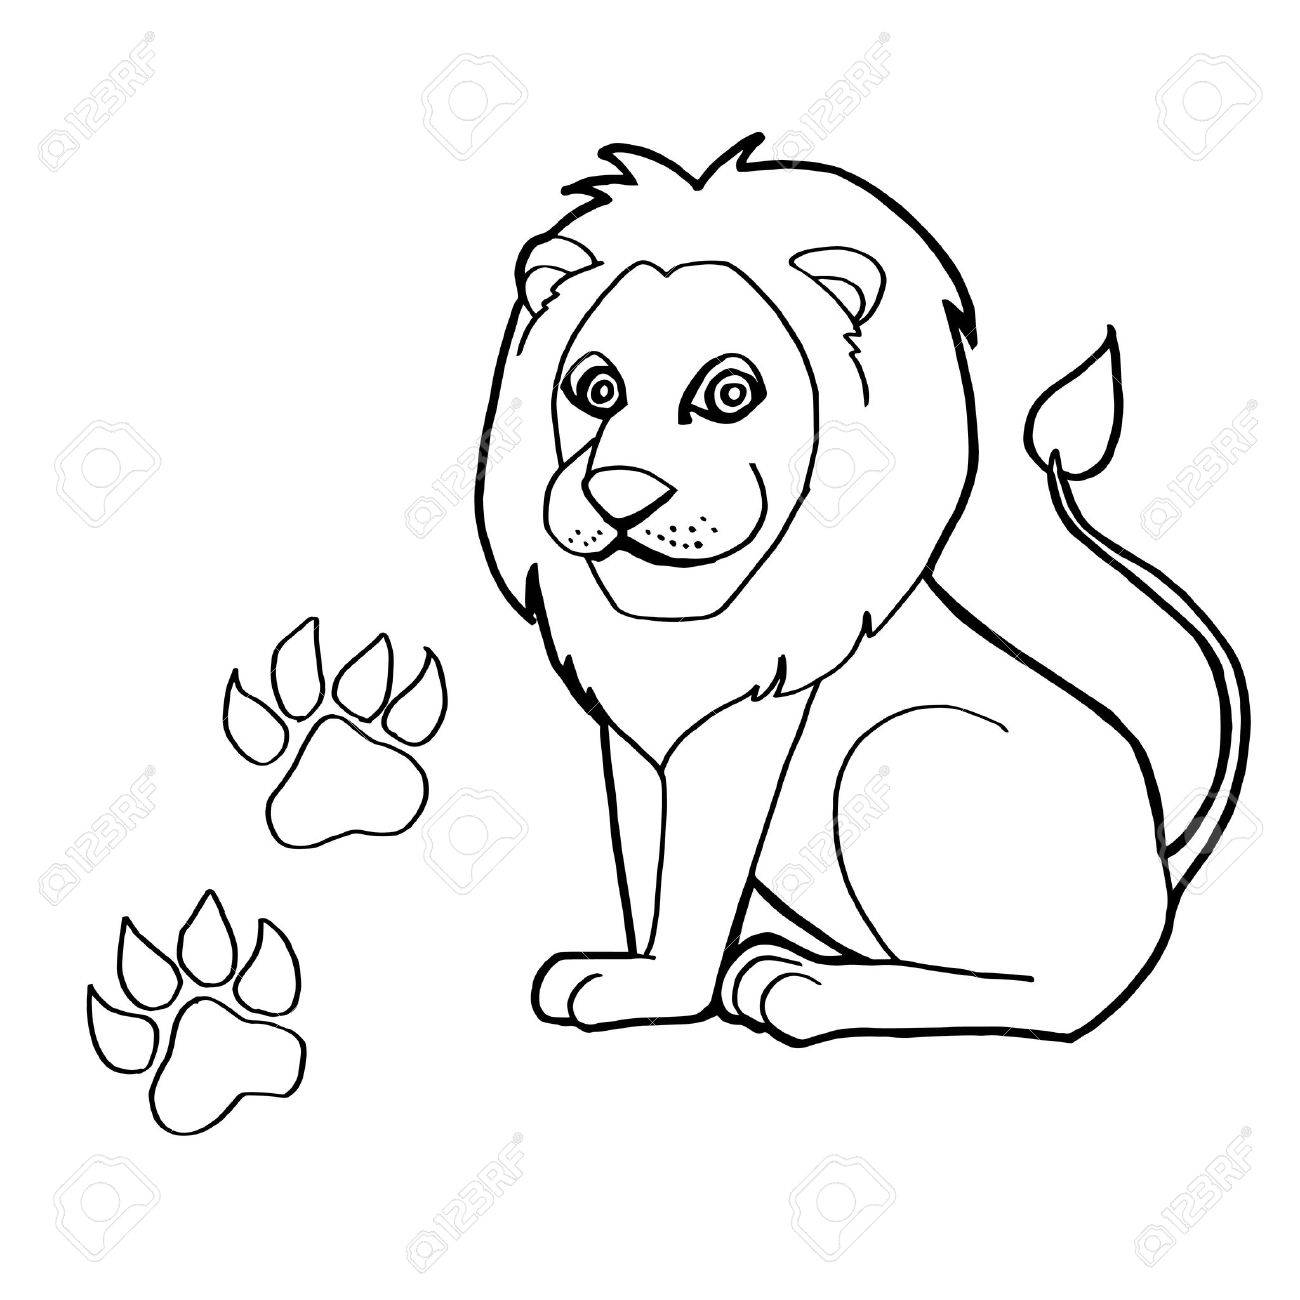 Paw Print With Lions Coloring Pages Stock Vector